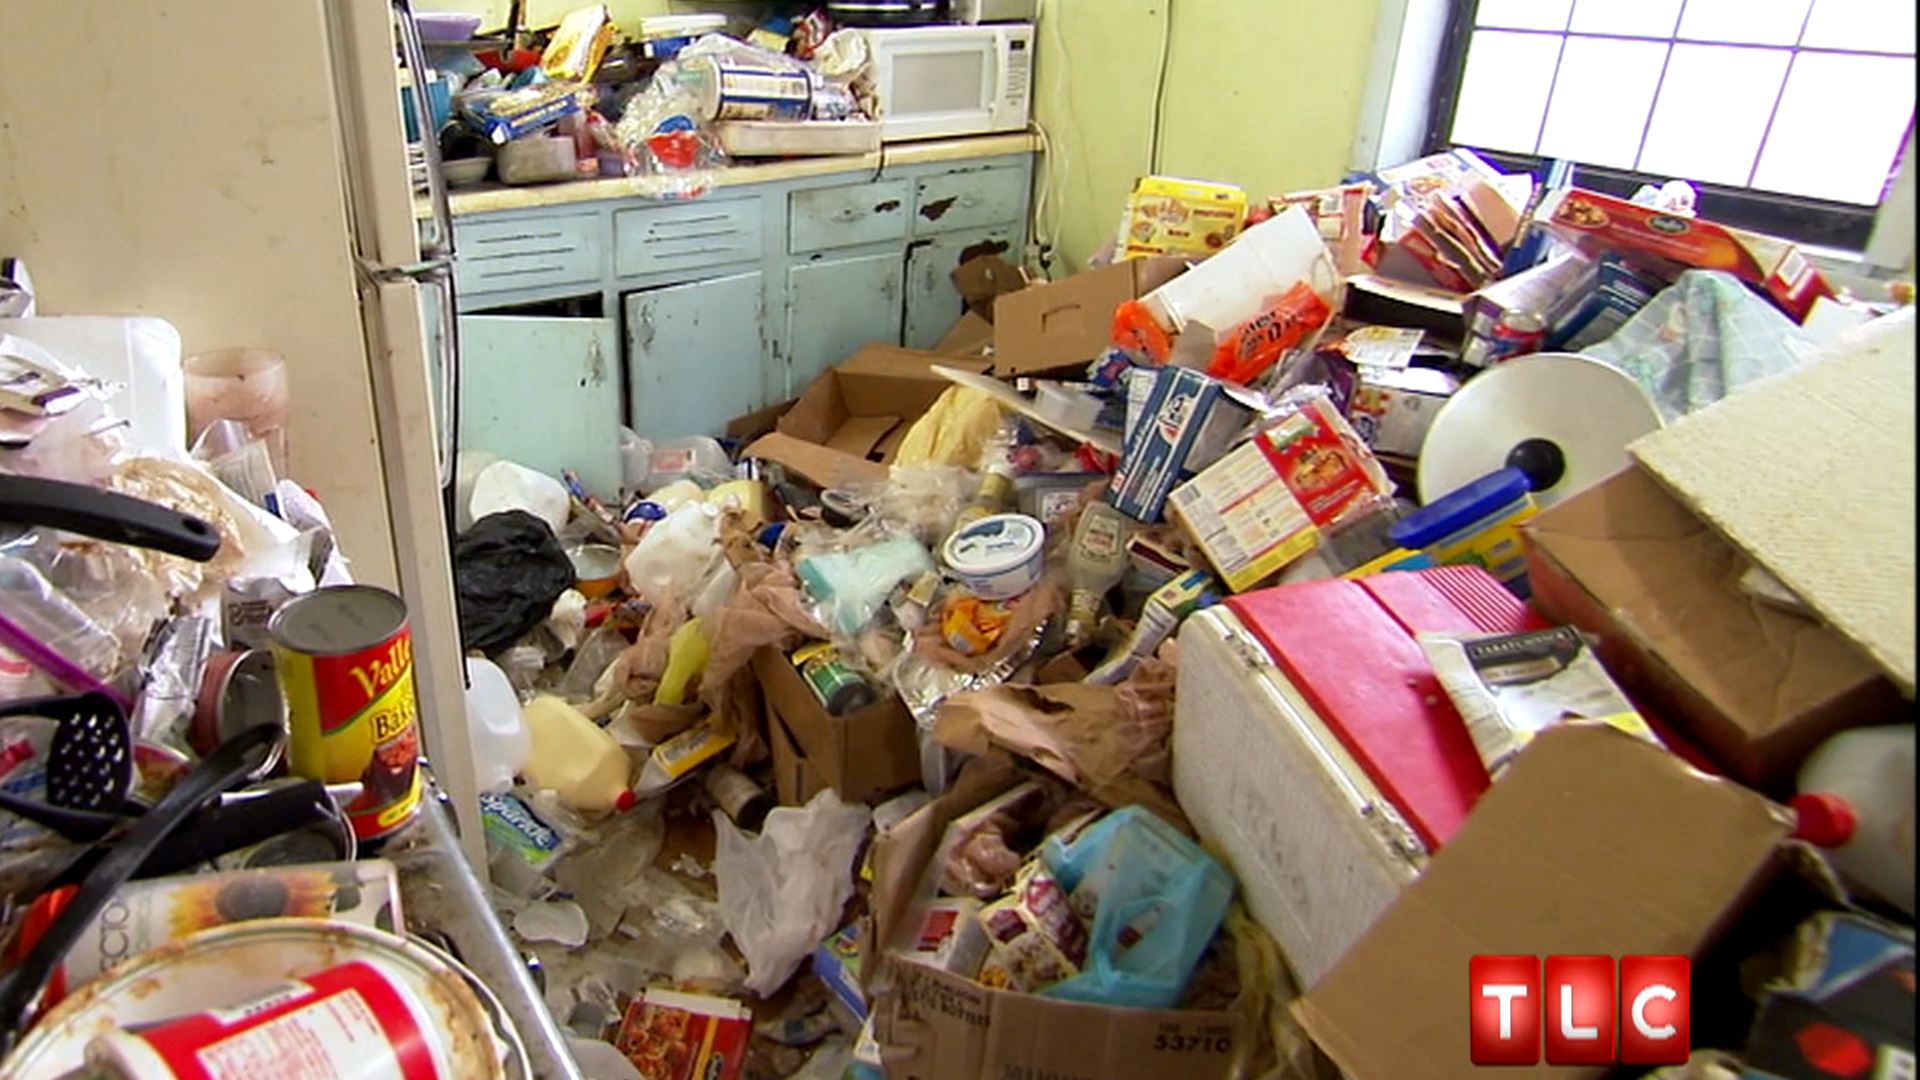 Hoarders Craft Room Mess